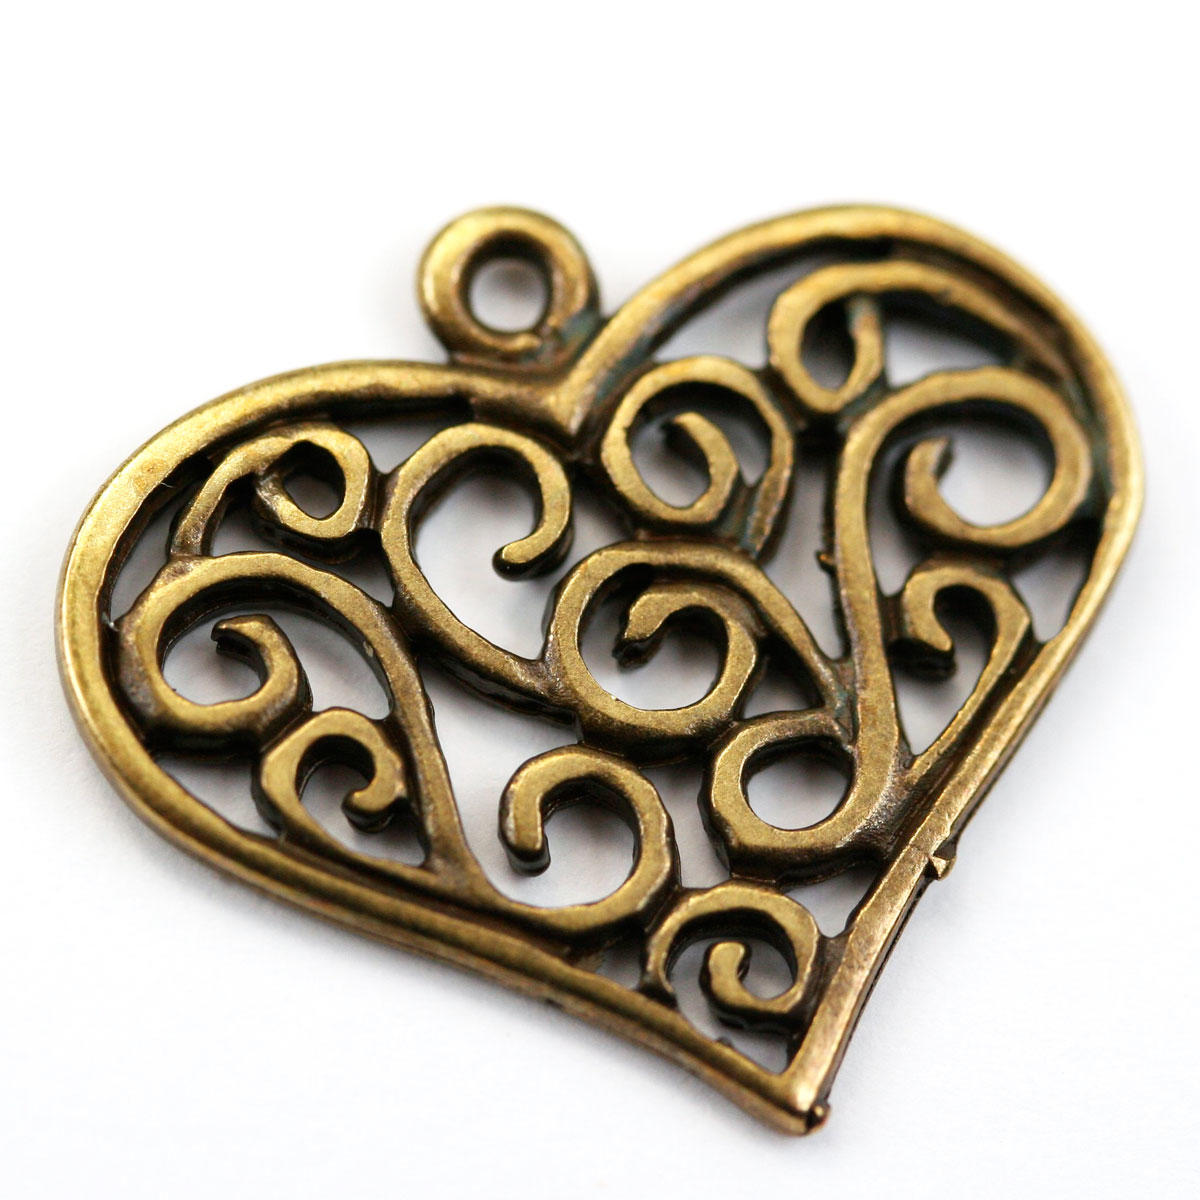 Antique Gold Filigree Heart Charm